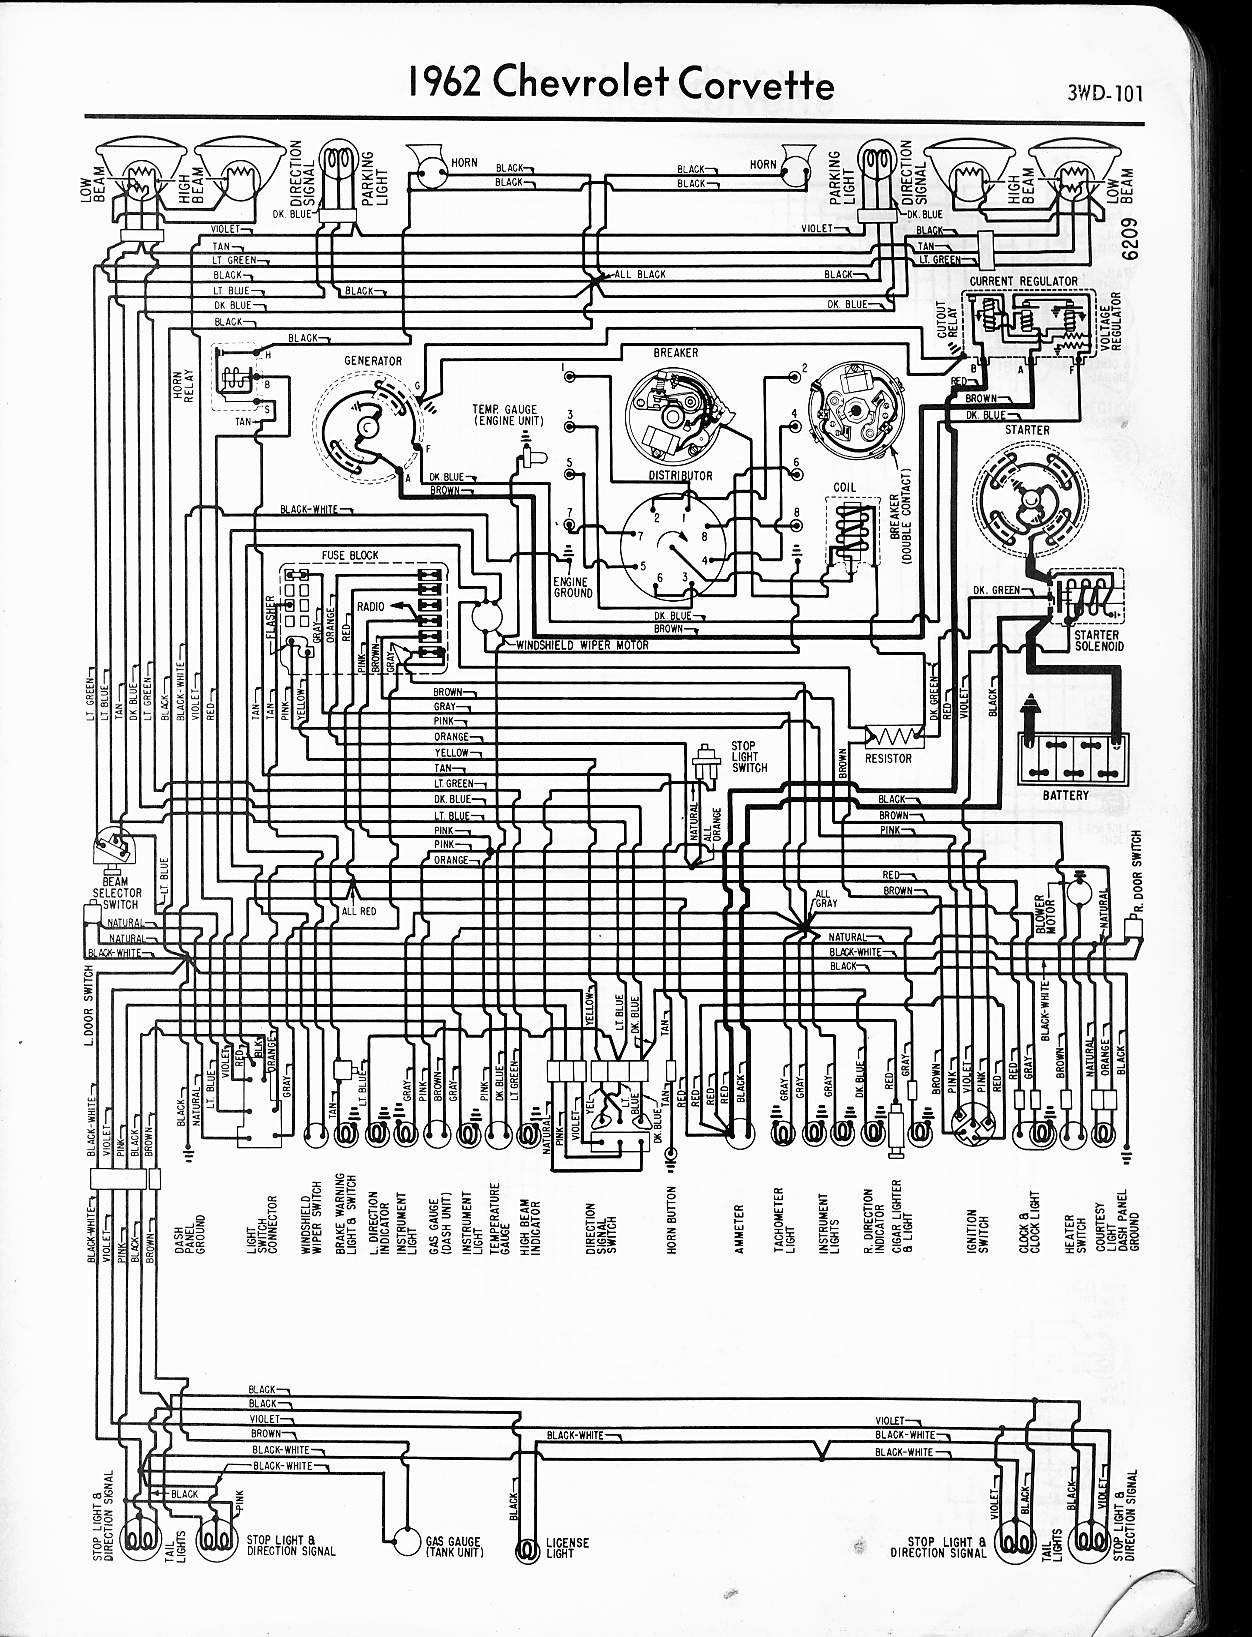 68 Corvette Dash Wiring Diagram Wiring Diagram Overview A Overview A Musikami It